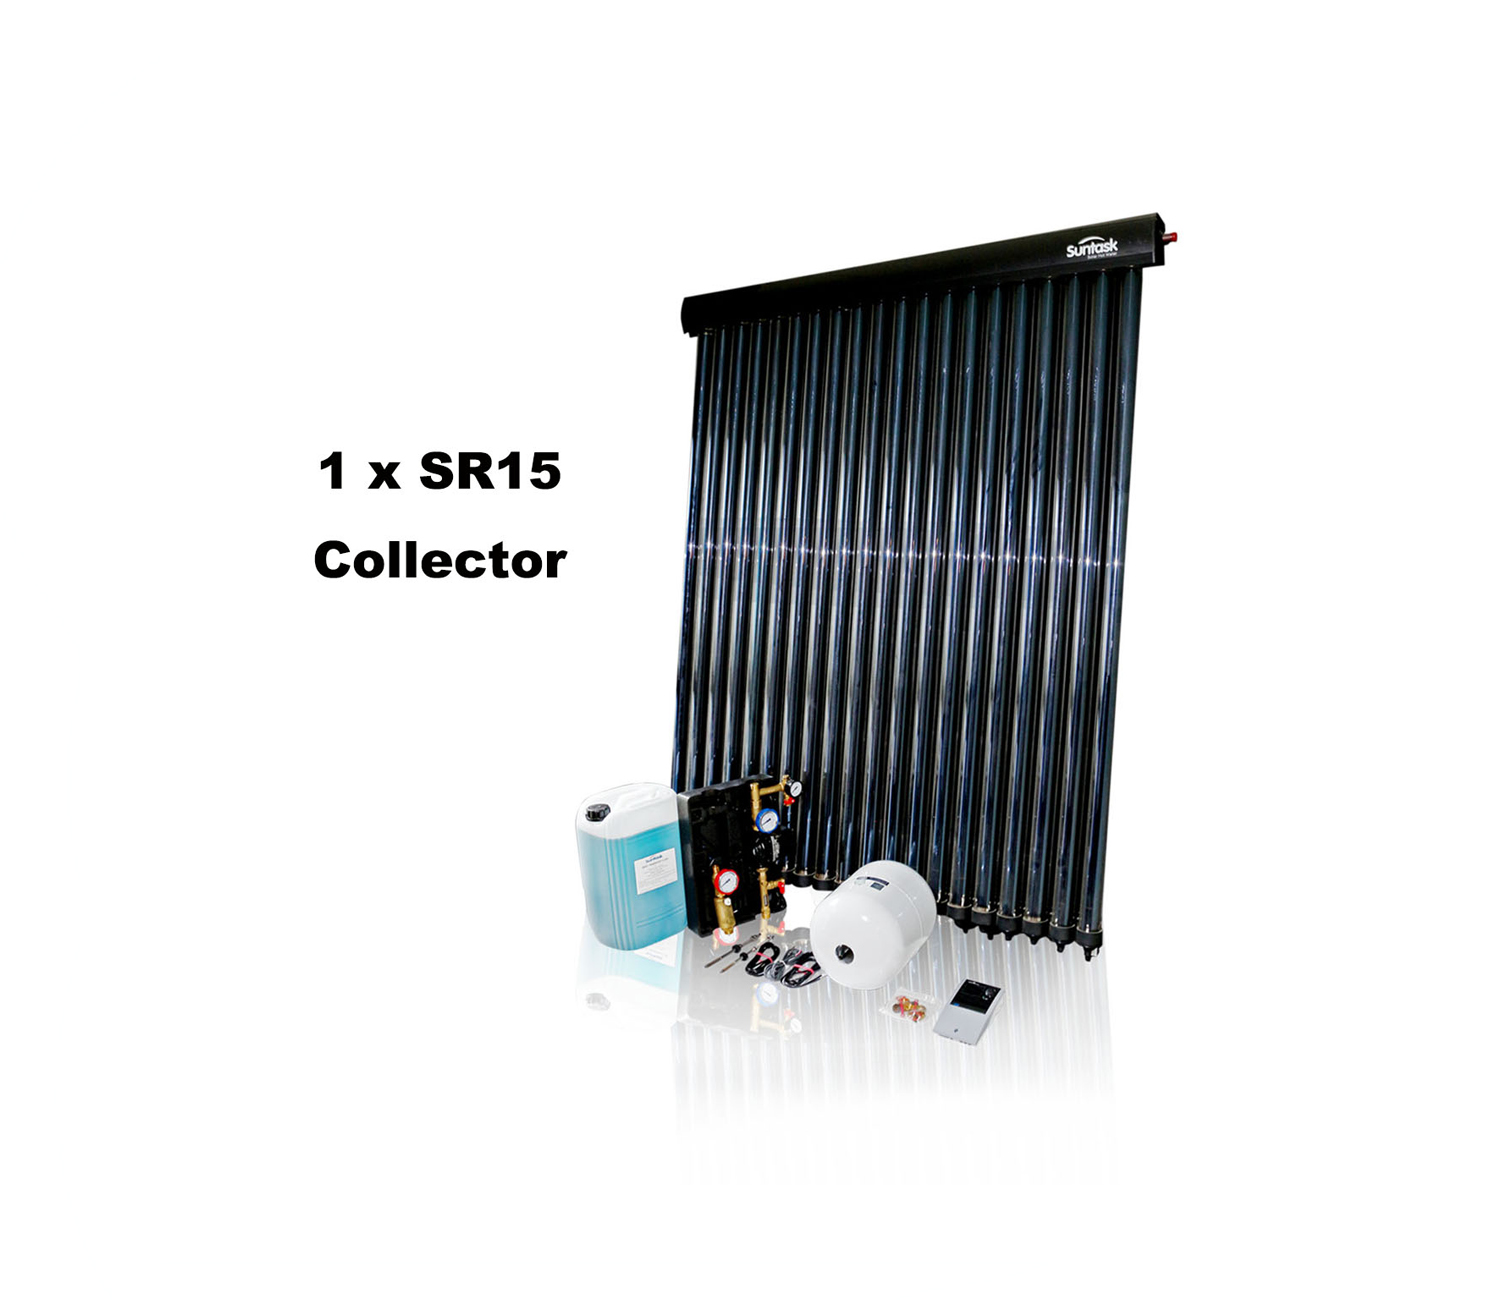 Suntask_full_Solar_Thermal_Kits_excluding_Cylinders_15_Tube_System(1 x SR15_Collector).jpg